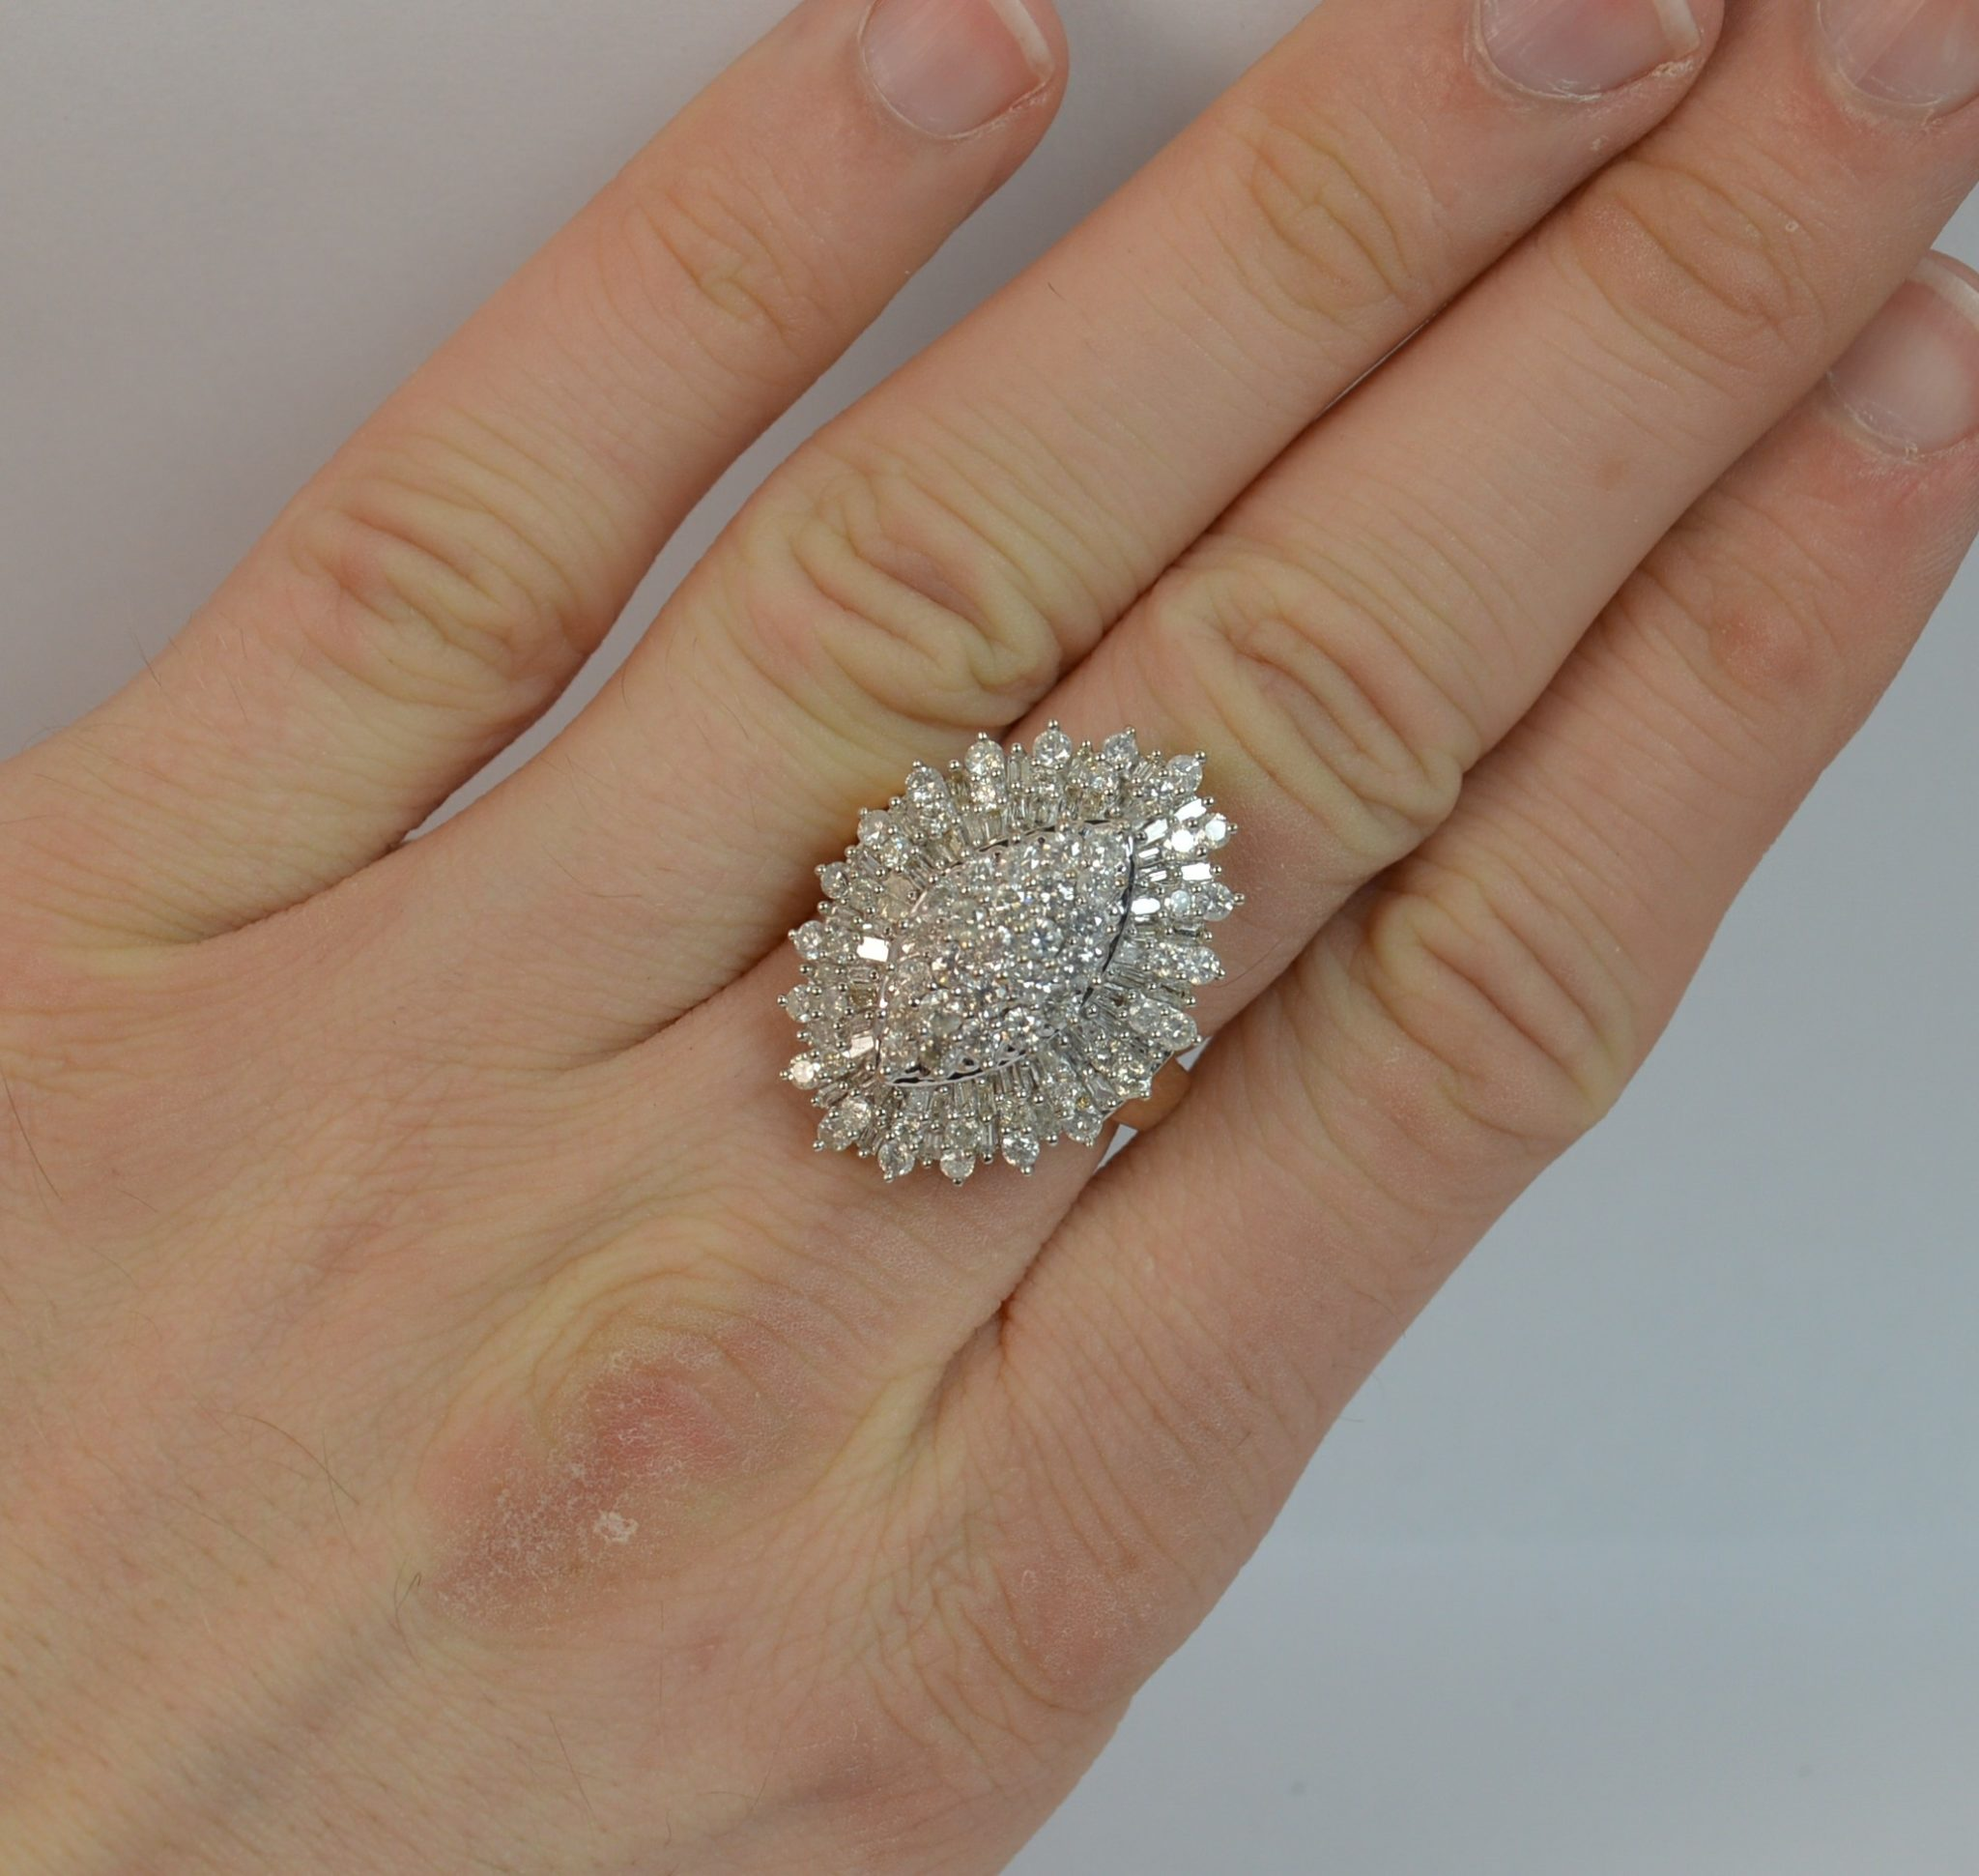 ce0007142bf91 Bling 2.50 Carat Diamond and 9 Carat Gold Cluster Ring d0369